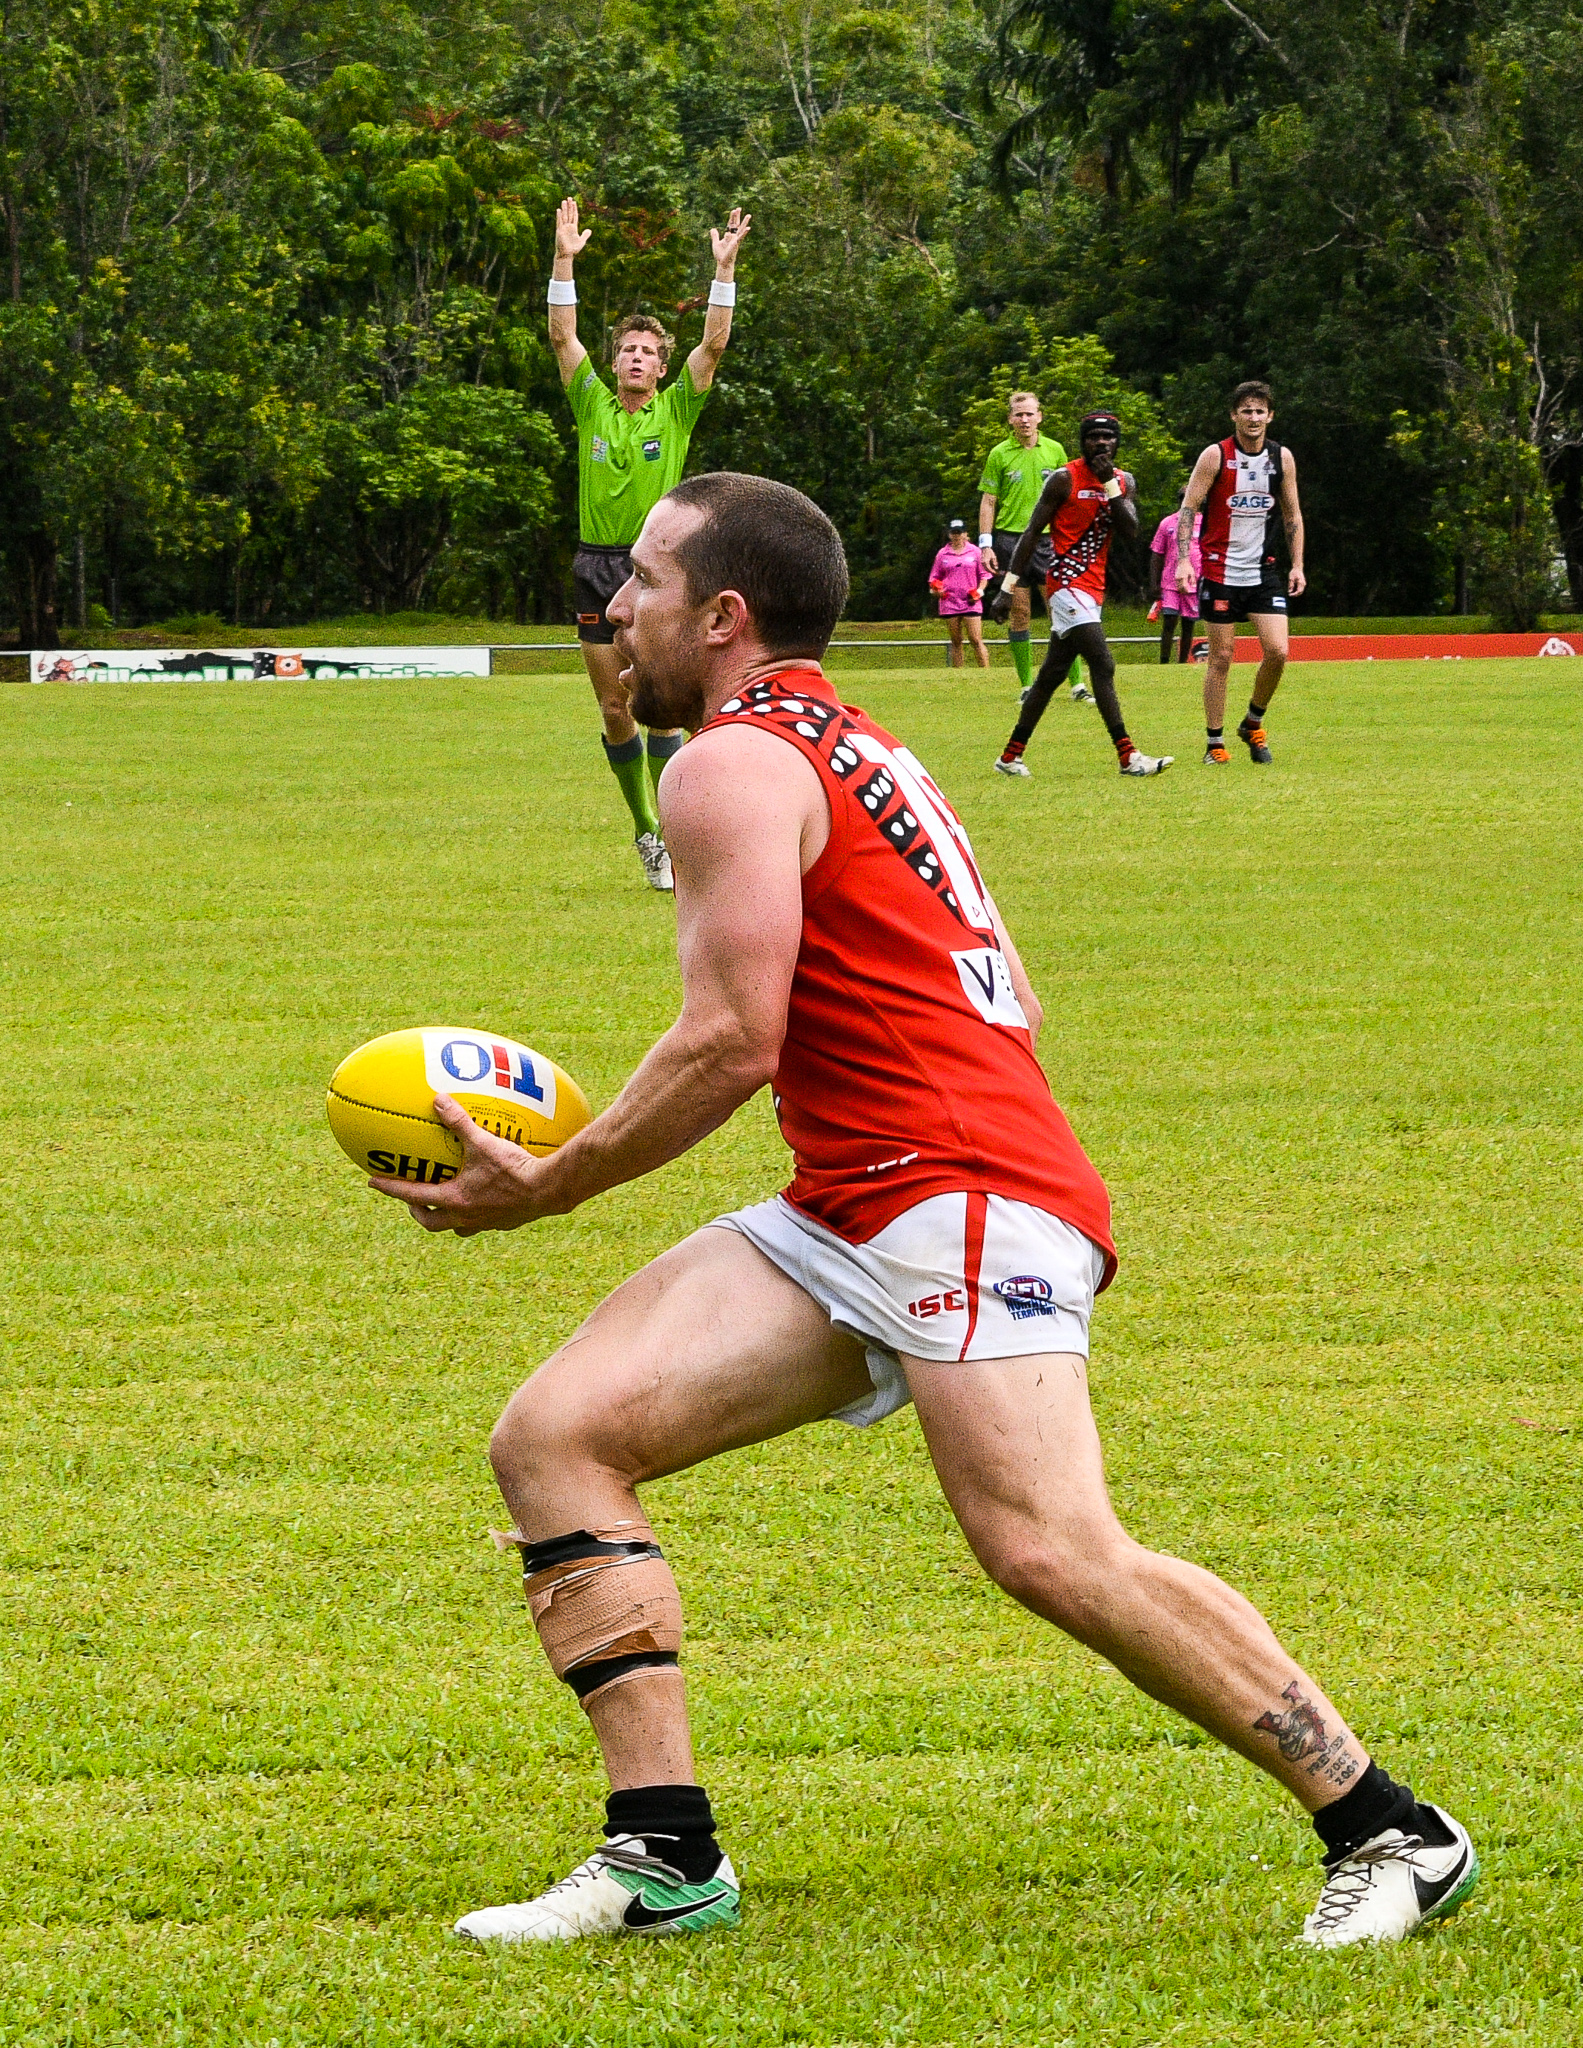 Ashton Ham, with his calf heavily taped, fires off a handball against the Crocs in round 14